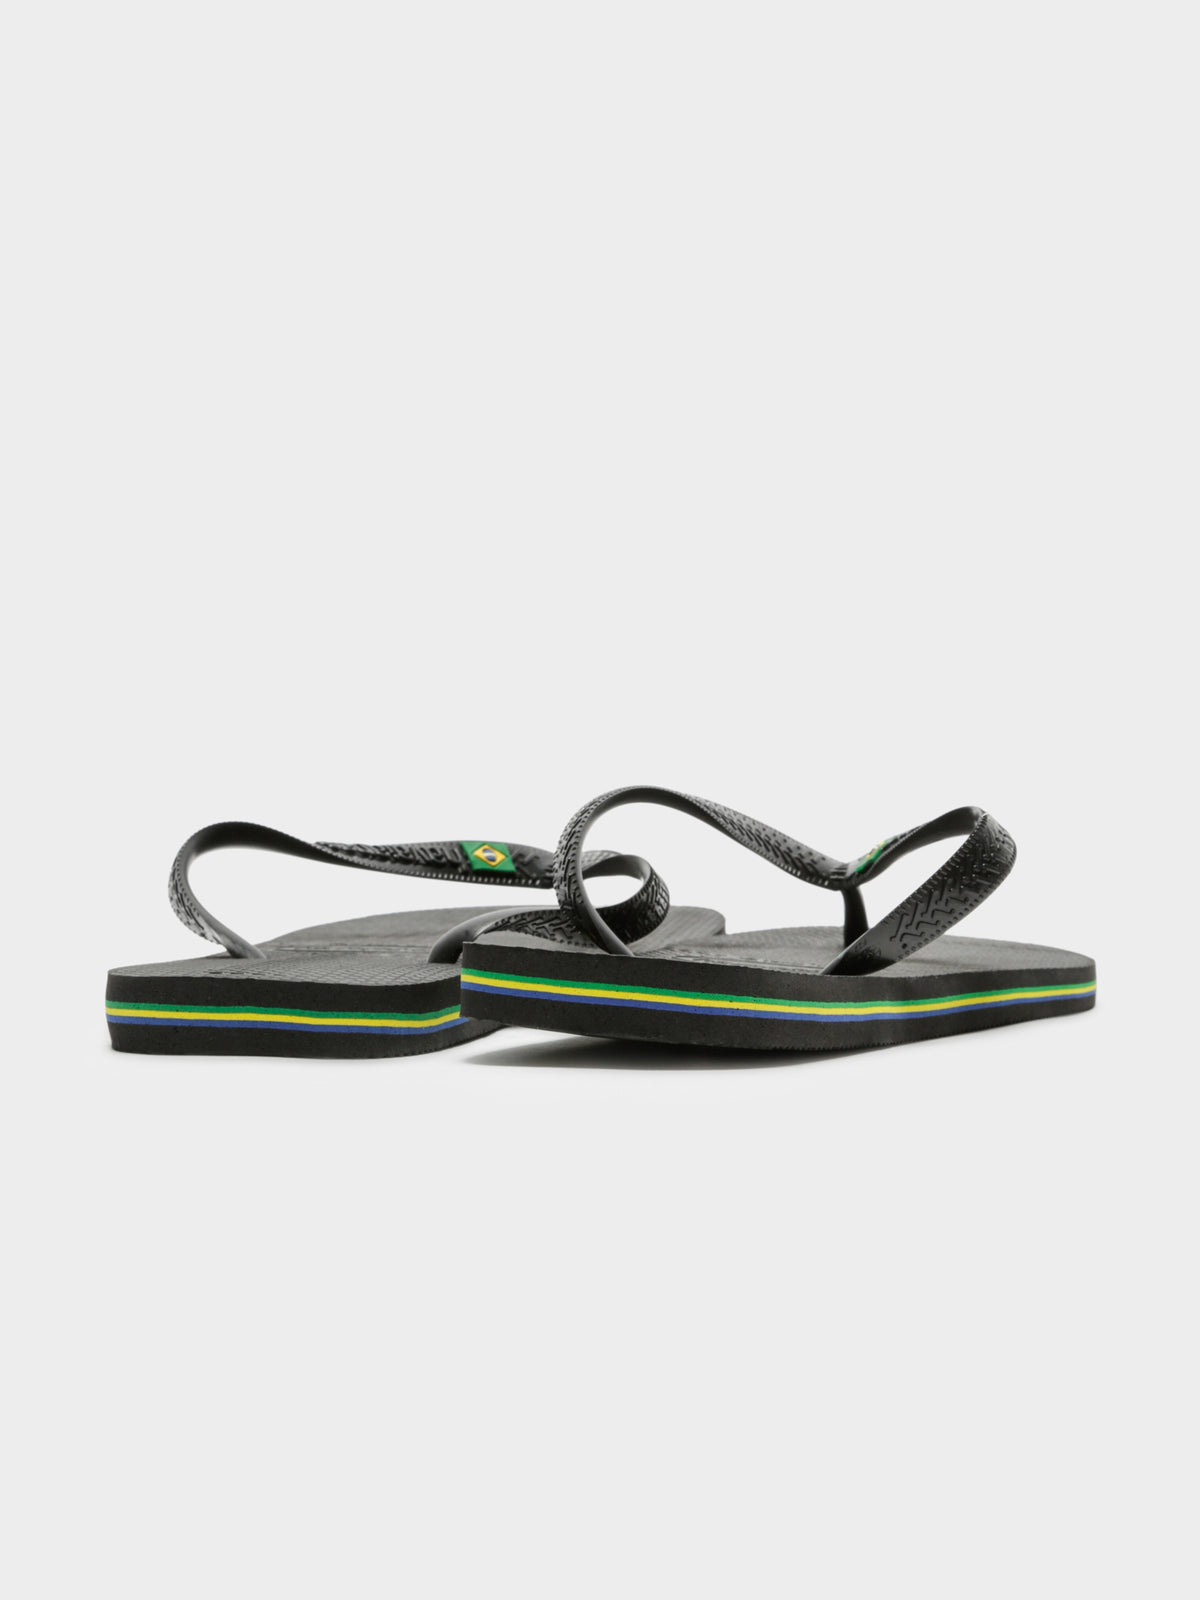 Mens Havaianas Brasil Thongs in Black